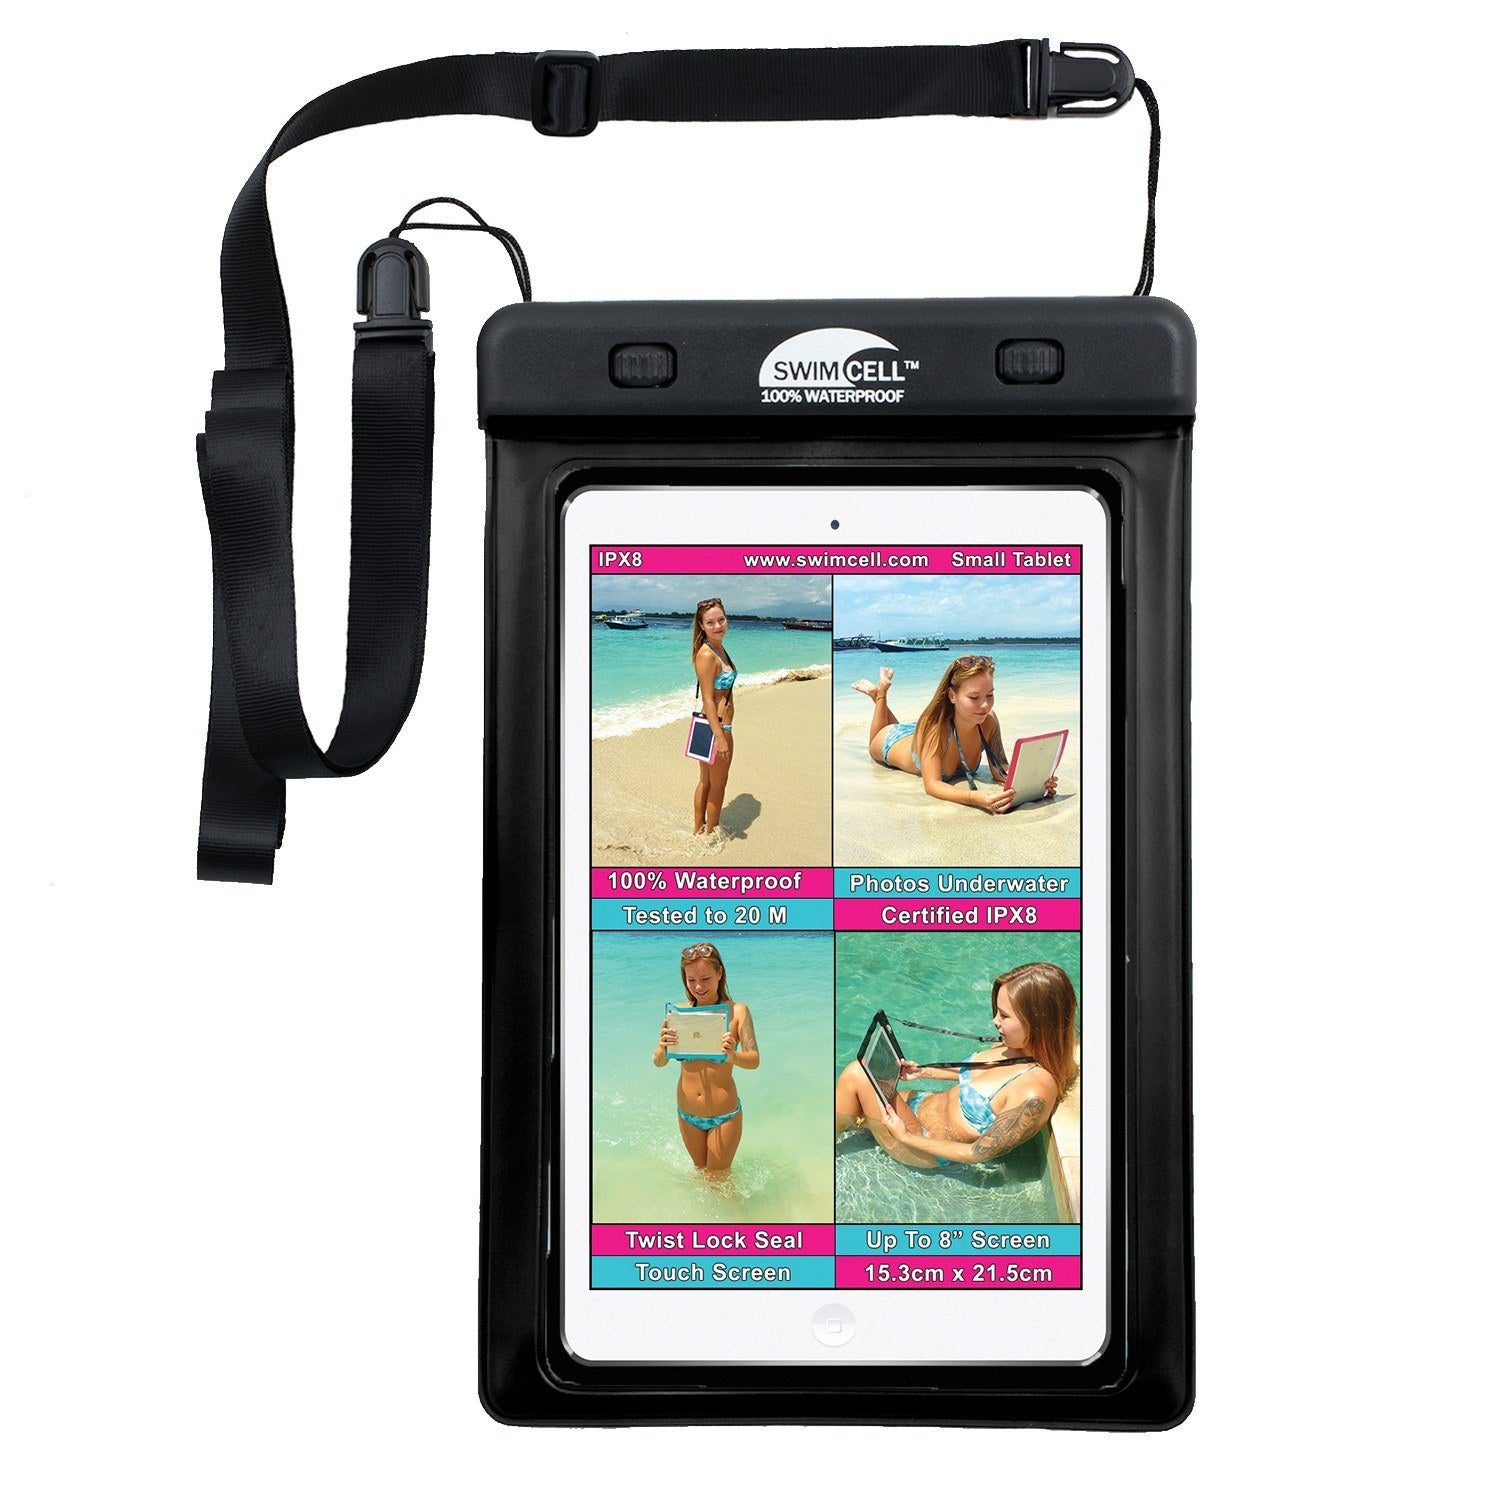 SwimCell 100% Waterproof Tablet Case - Small (up to 15 3 x